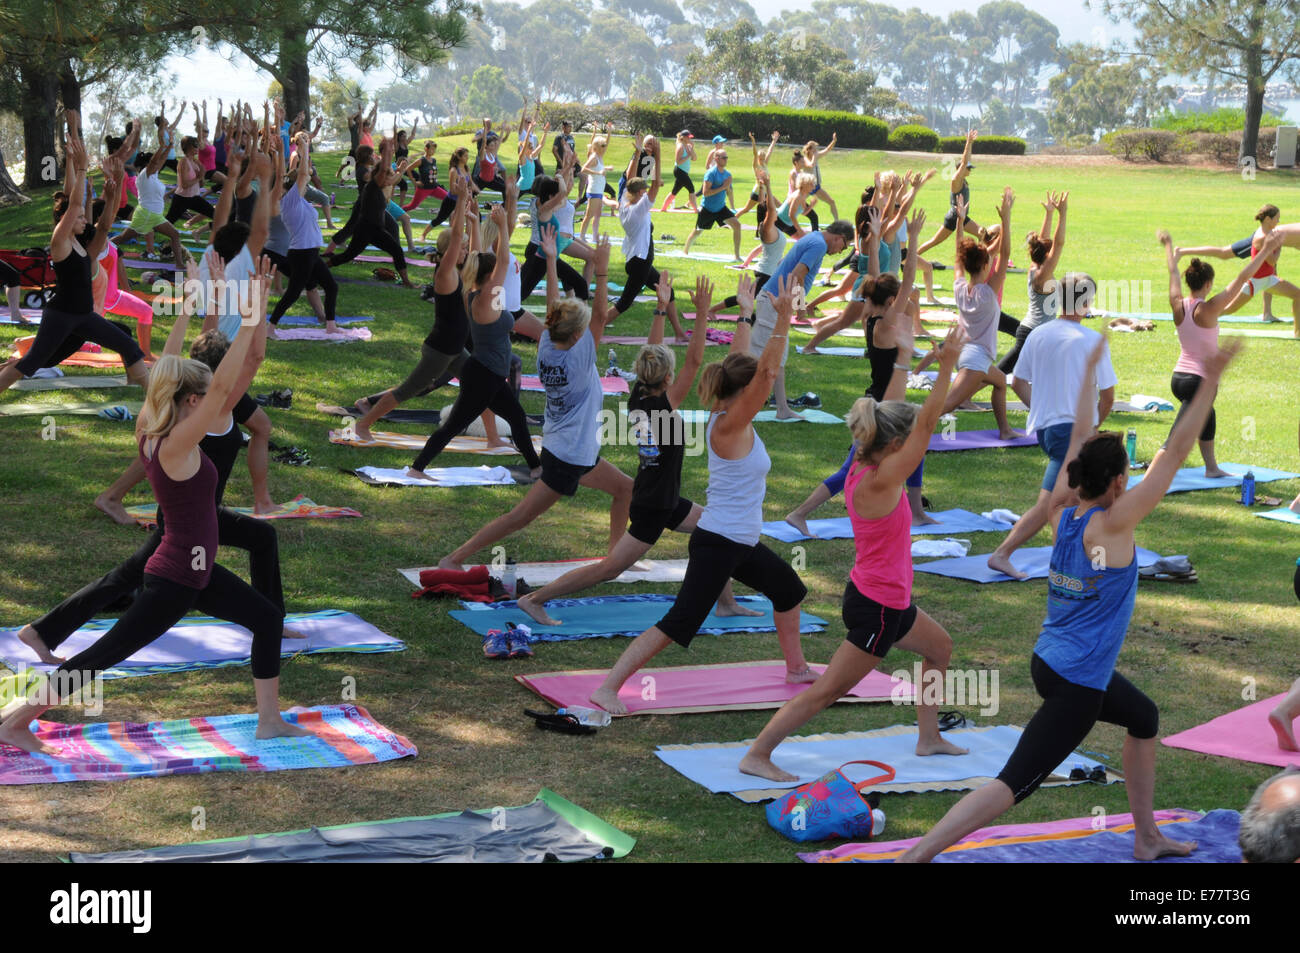 Daily free outdoor exercise and yoga classes at Lantern Bay Park in Dana Point, California - Stock Image